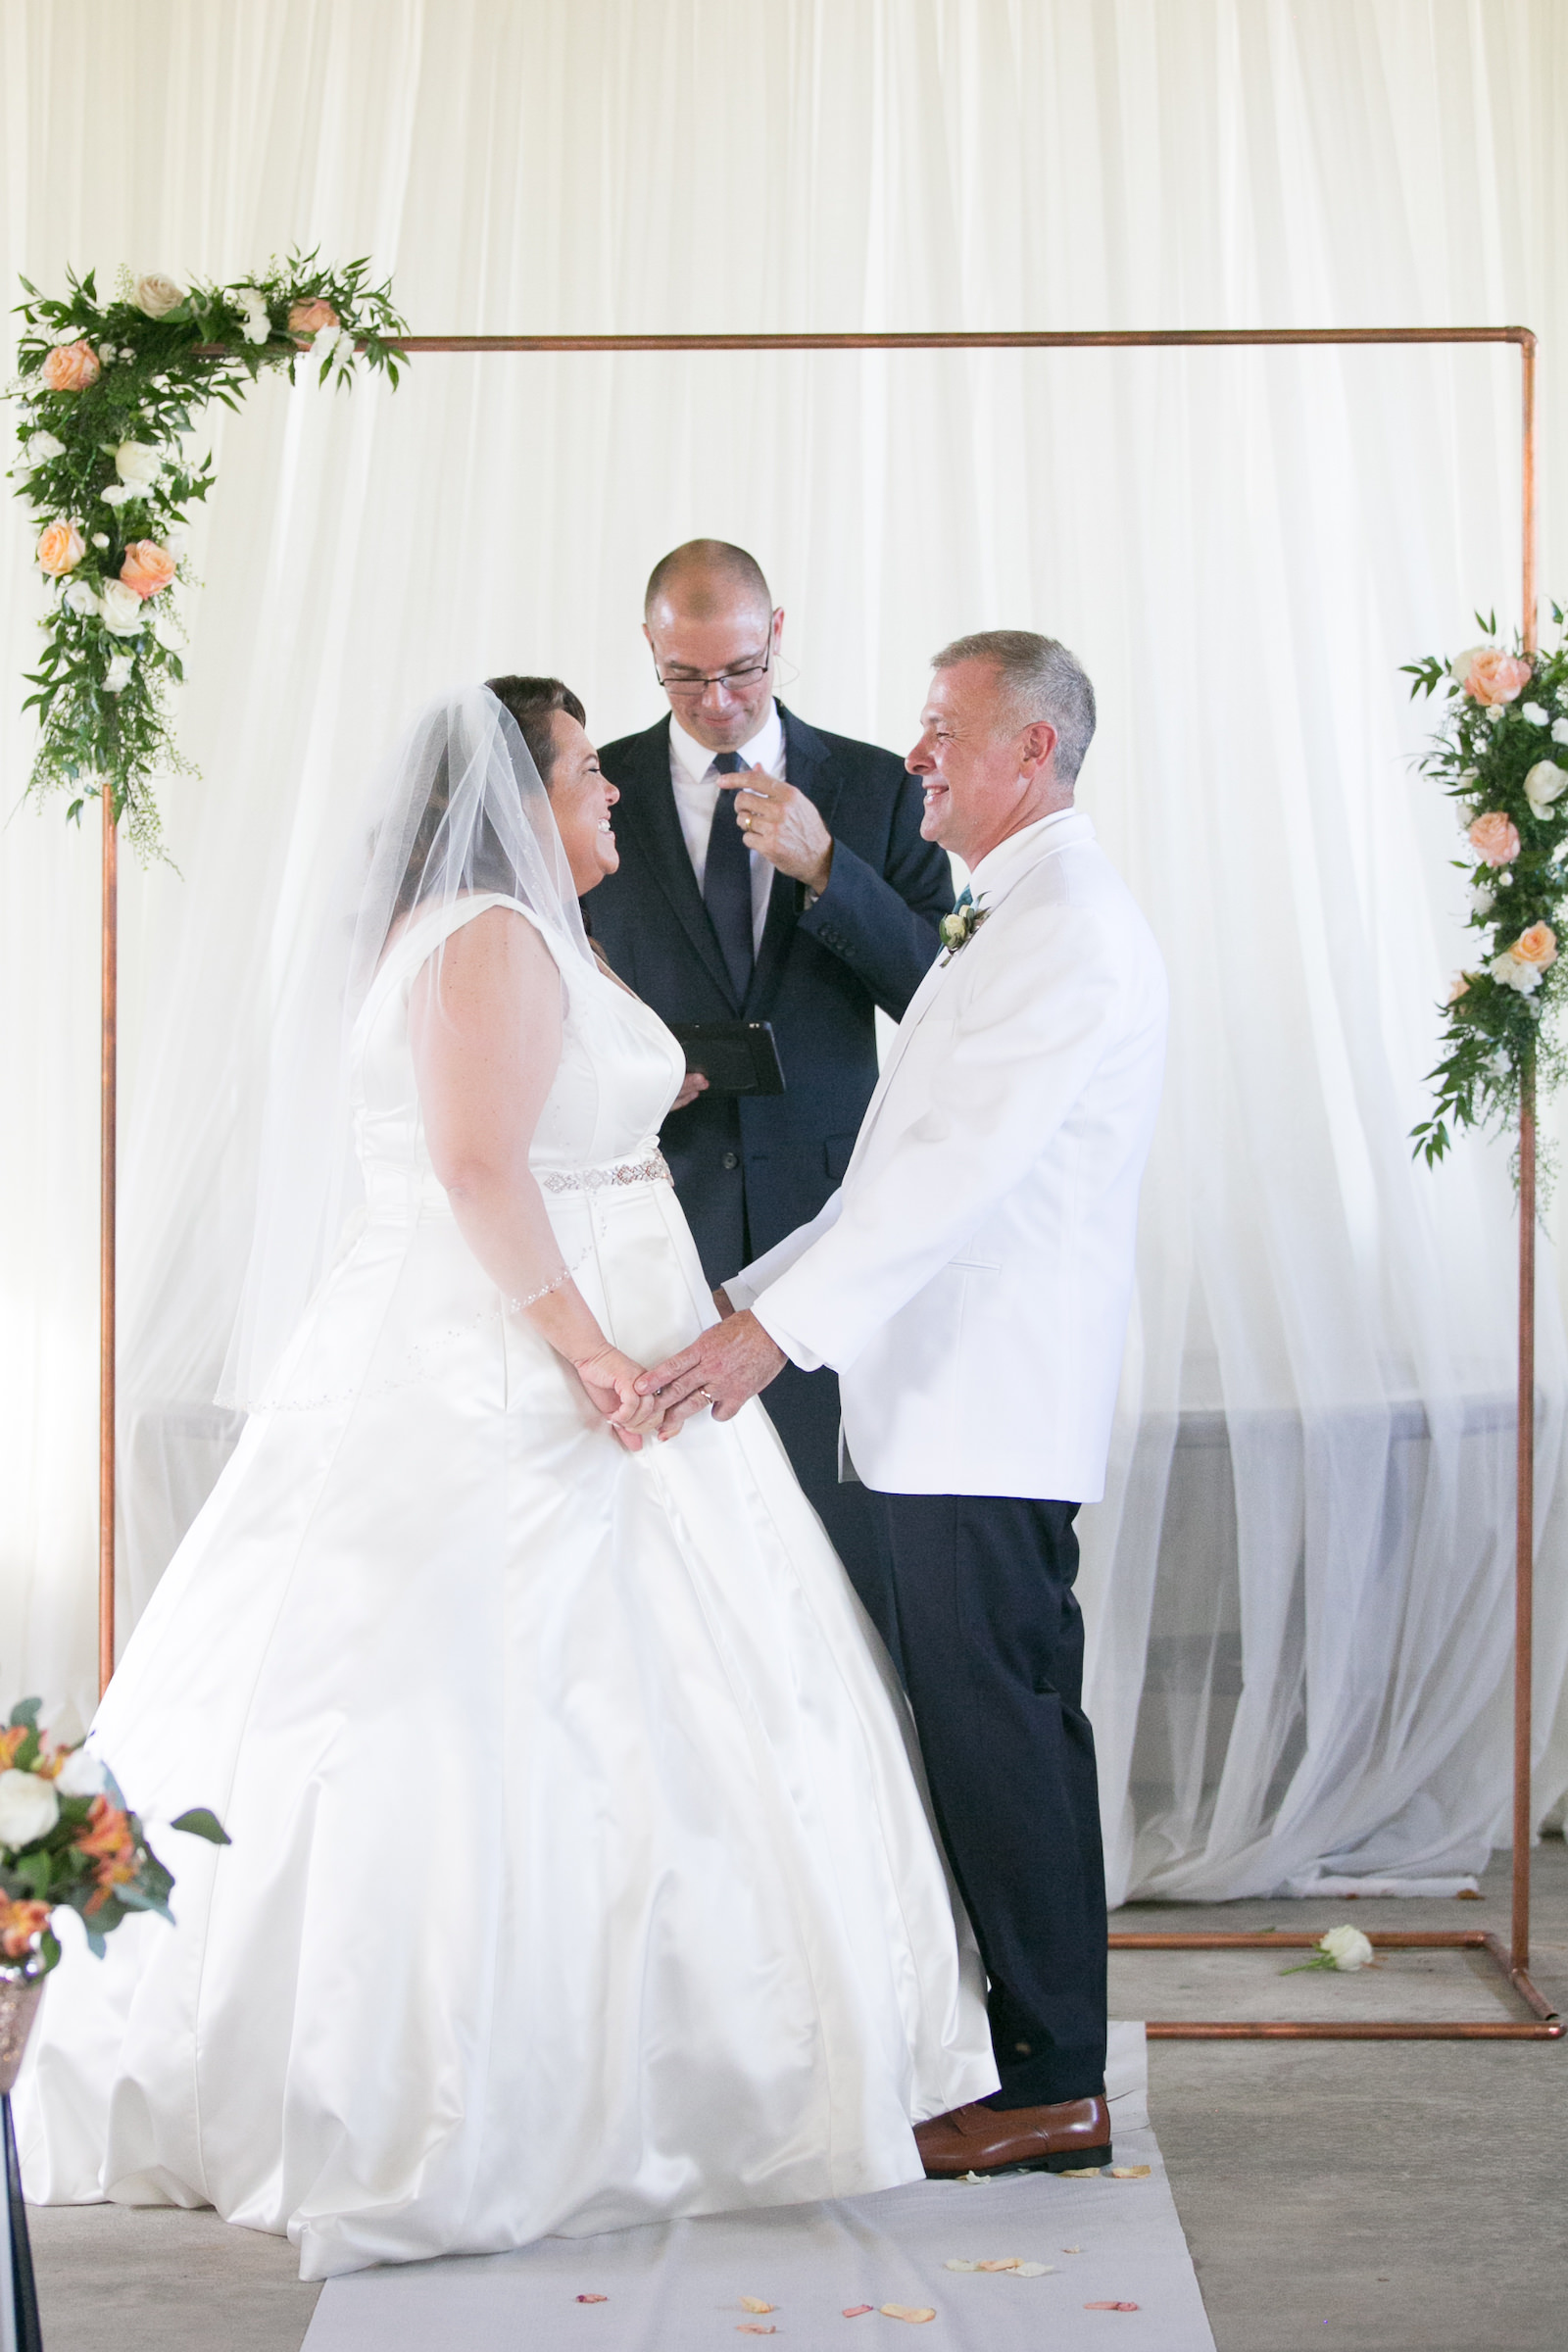 Tampa Bride and Groom Under Copper Arch Exchanging Wedding Vows During Ceremony Portrait | Wedding Photographer Carrie Wildes Photography | Wedding Dress Truly Forever Bridal